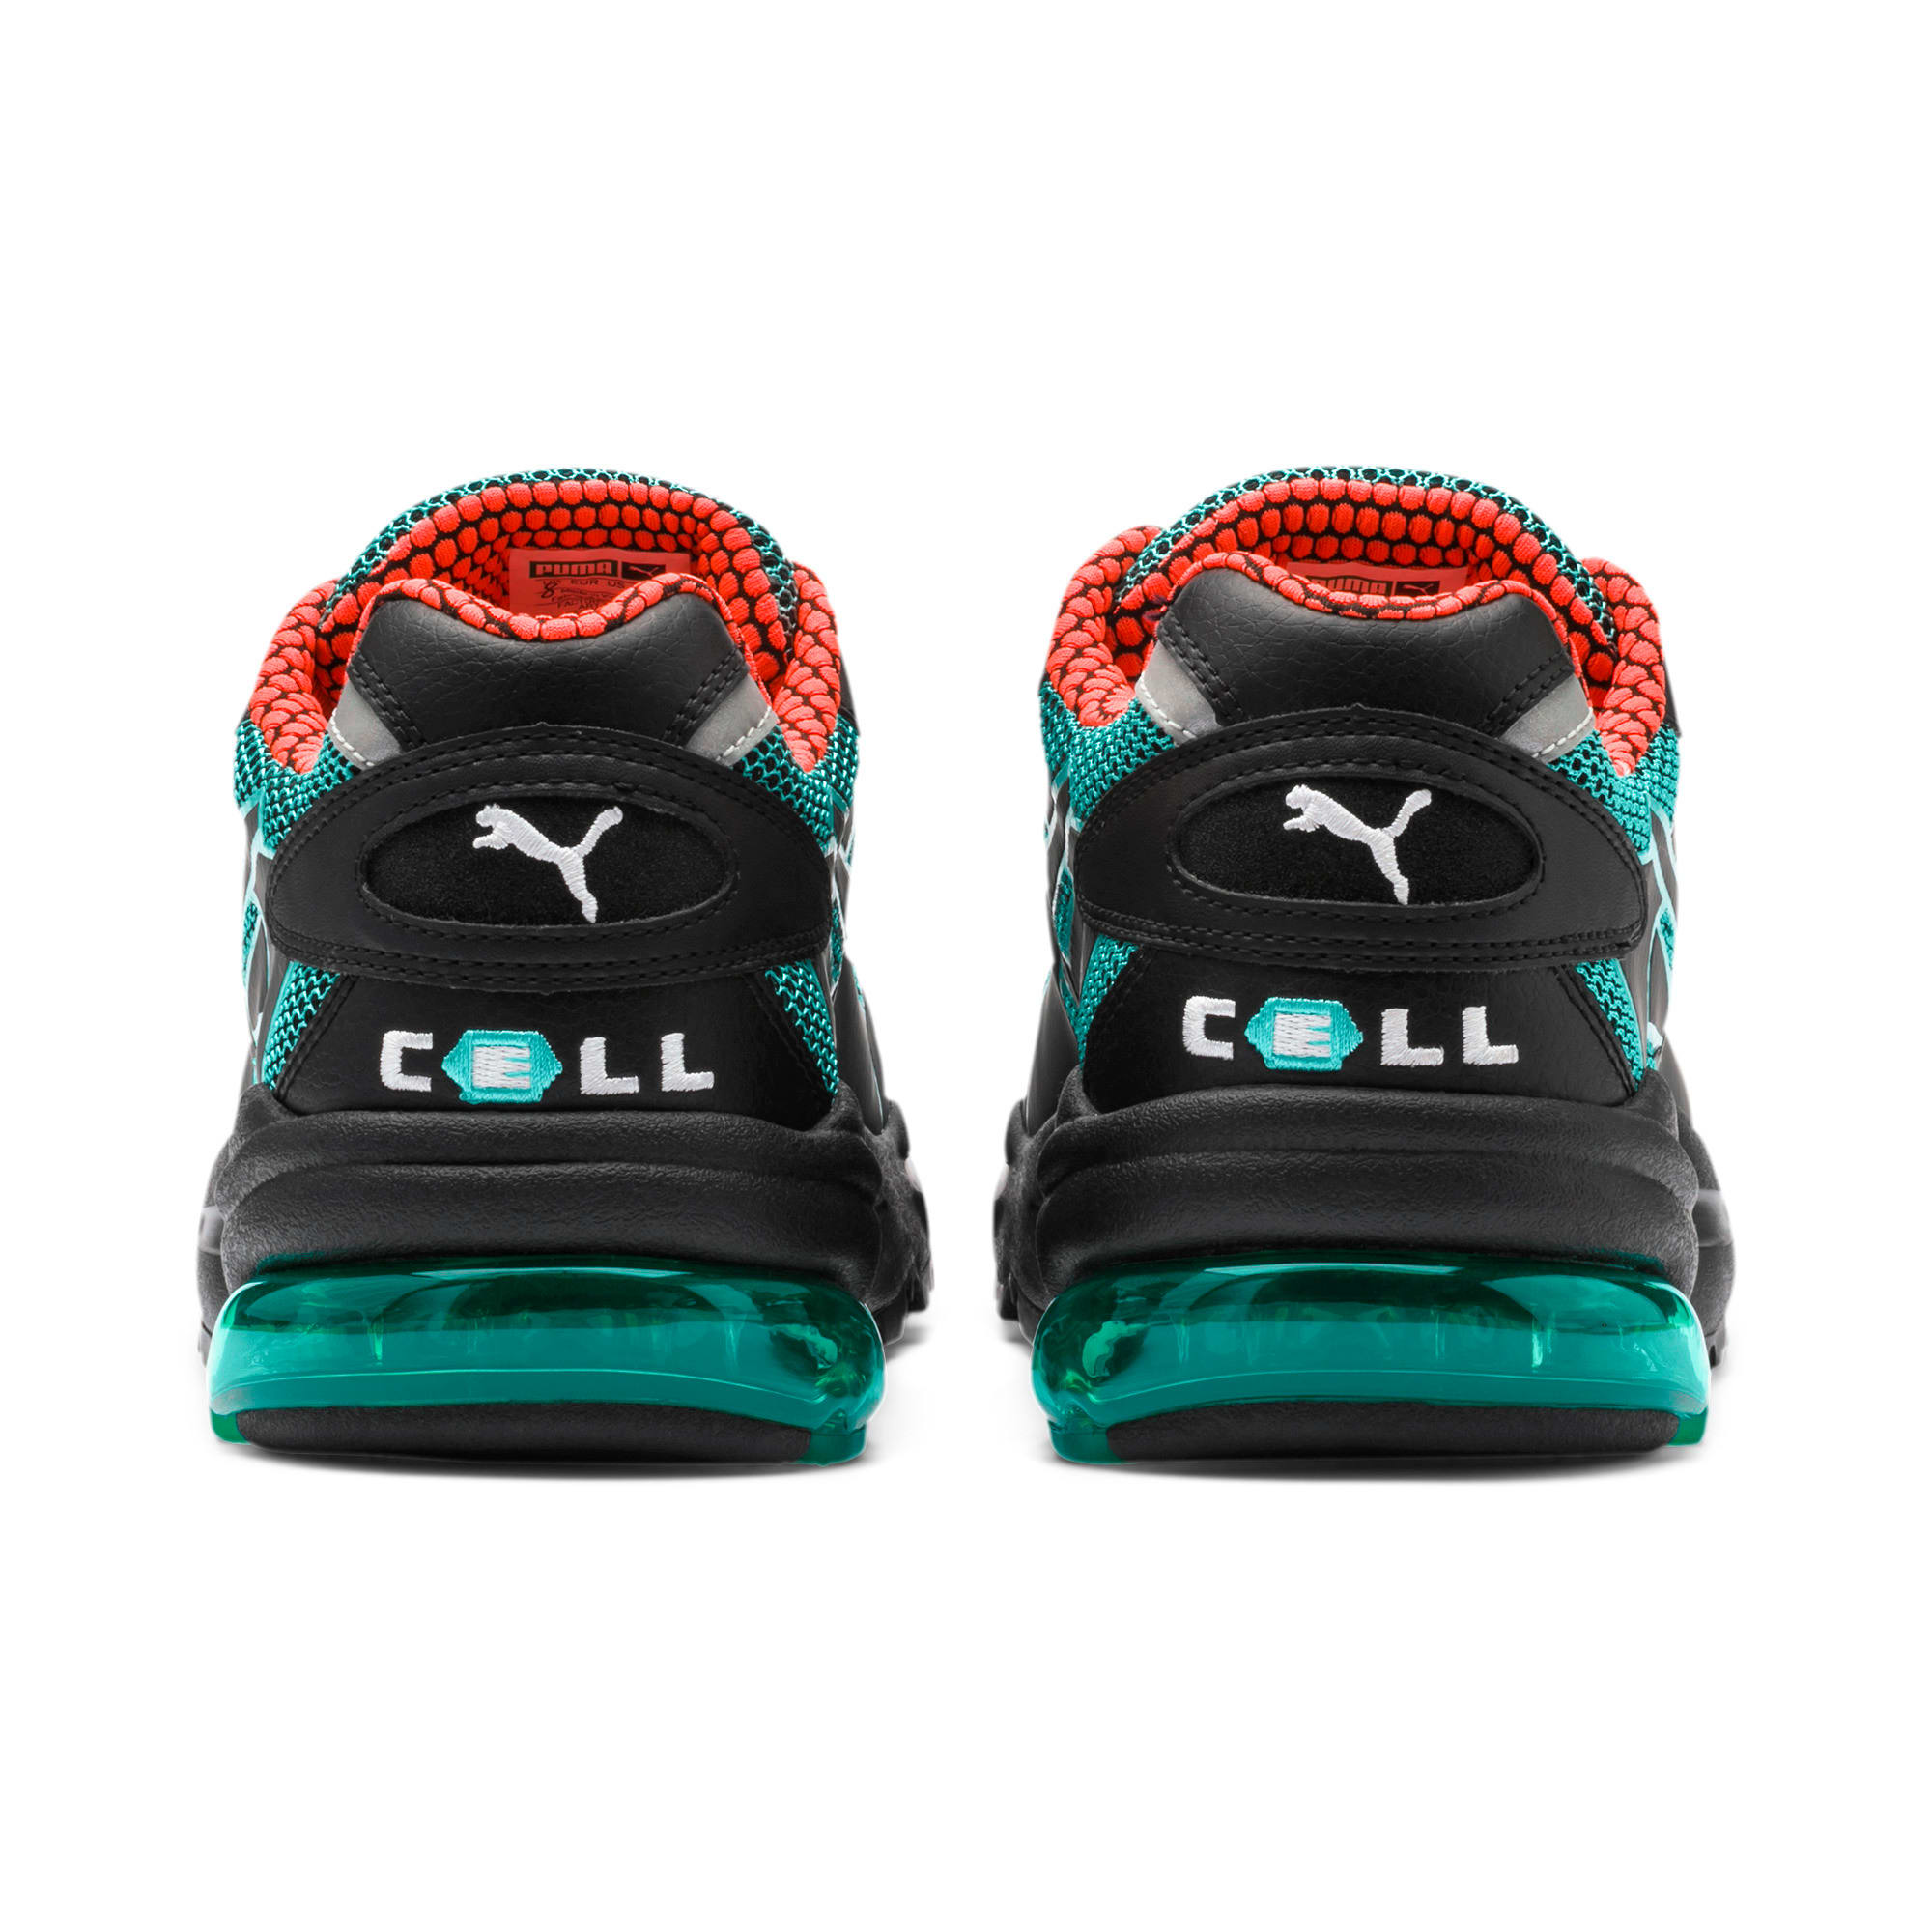 Thumbnail 4 of CELL Alien Kotto Trainers, Puma Black-Blue Turquoise, medium